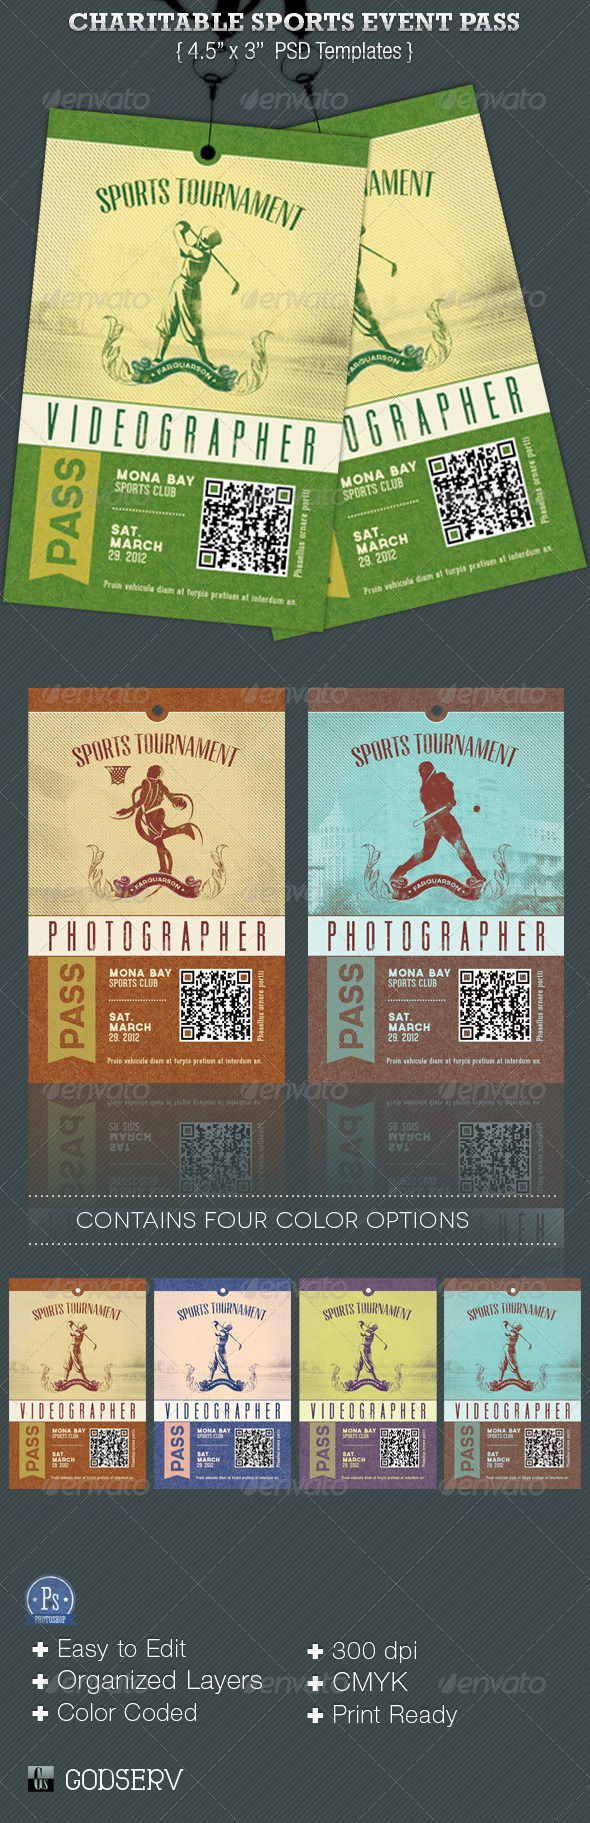 GraphicRiver Charitable Sports Event Pass Template 3864774